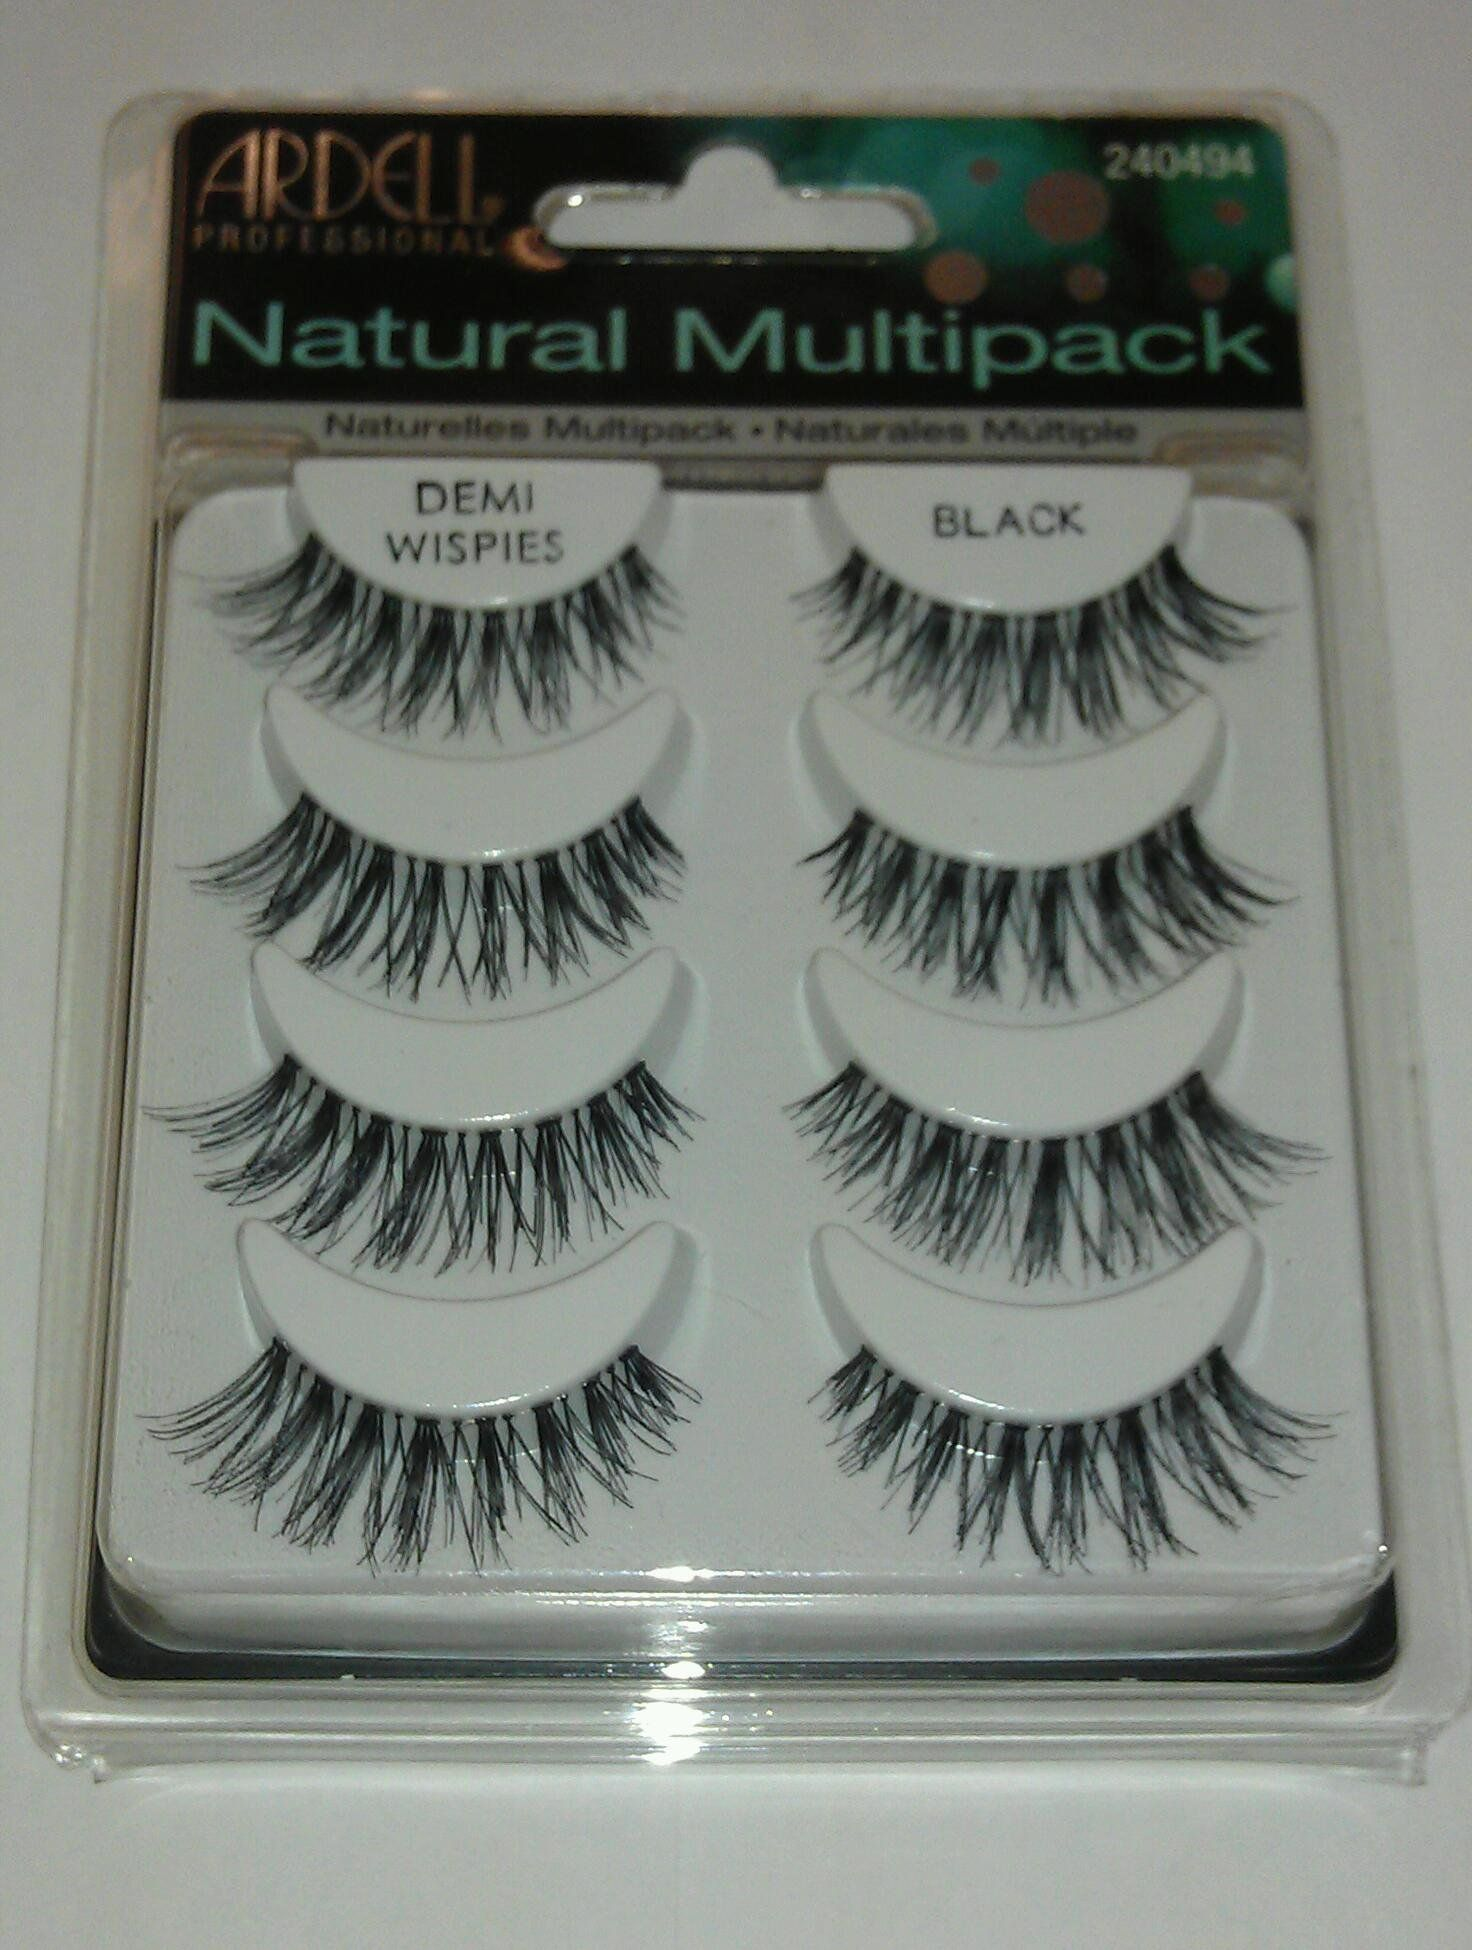 7c24866c1b8 Ardell Fashion Lashes Black Demi Wispies Multipack. Lashes 1 Multipack = 4  pairs. Demi Wispies Black Lashes. Natural.